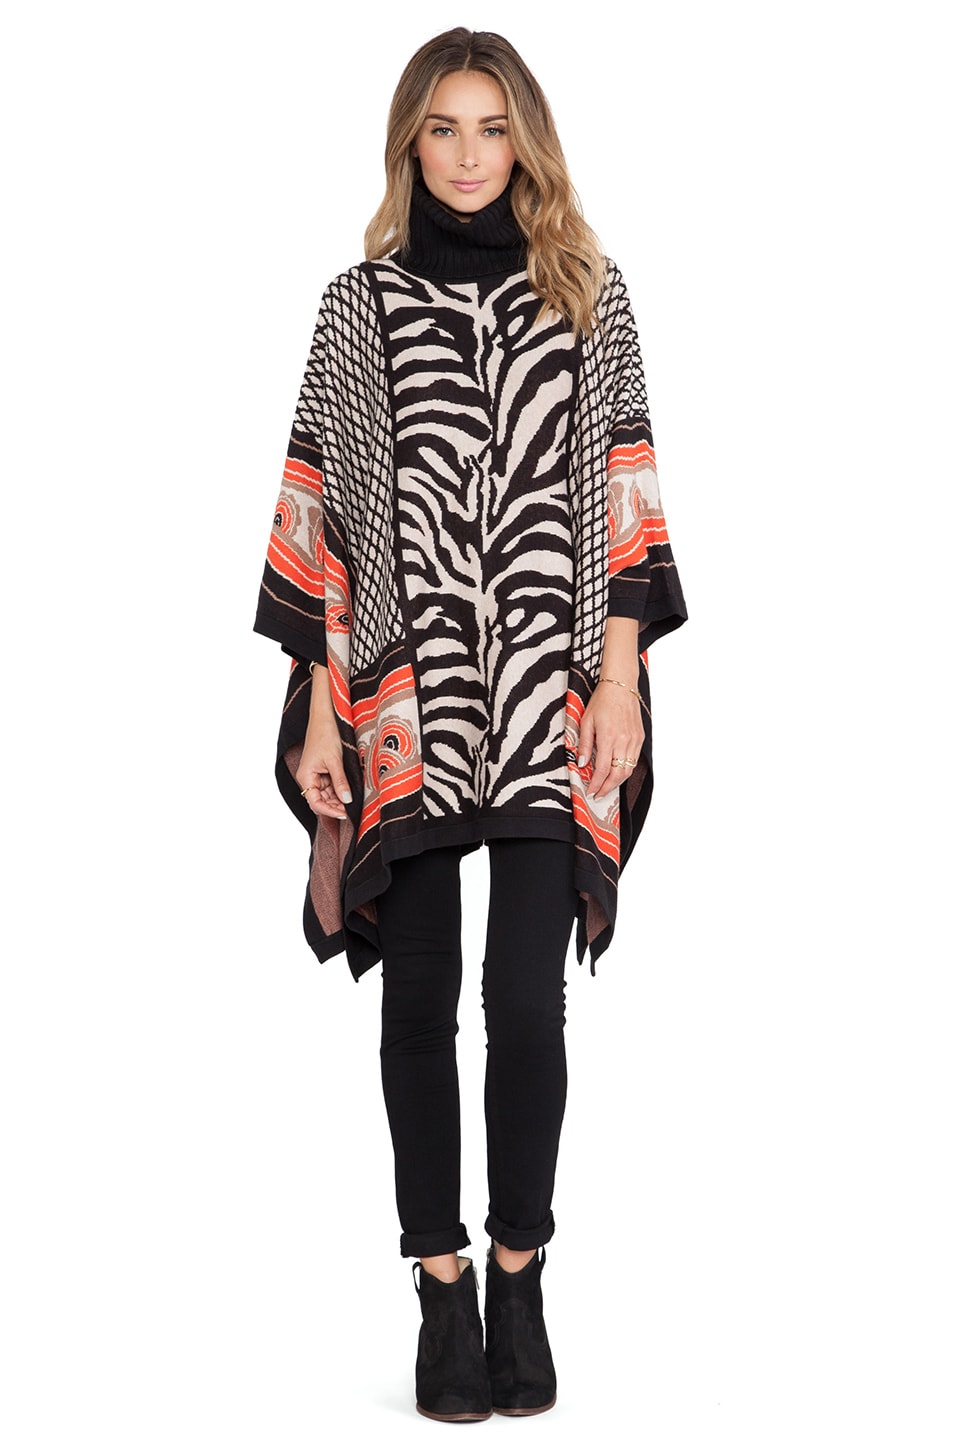 Alice by Temperley Ali Poncho in Black Mix